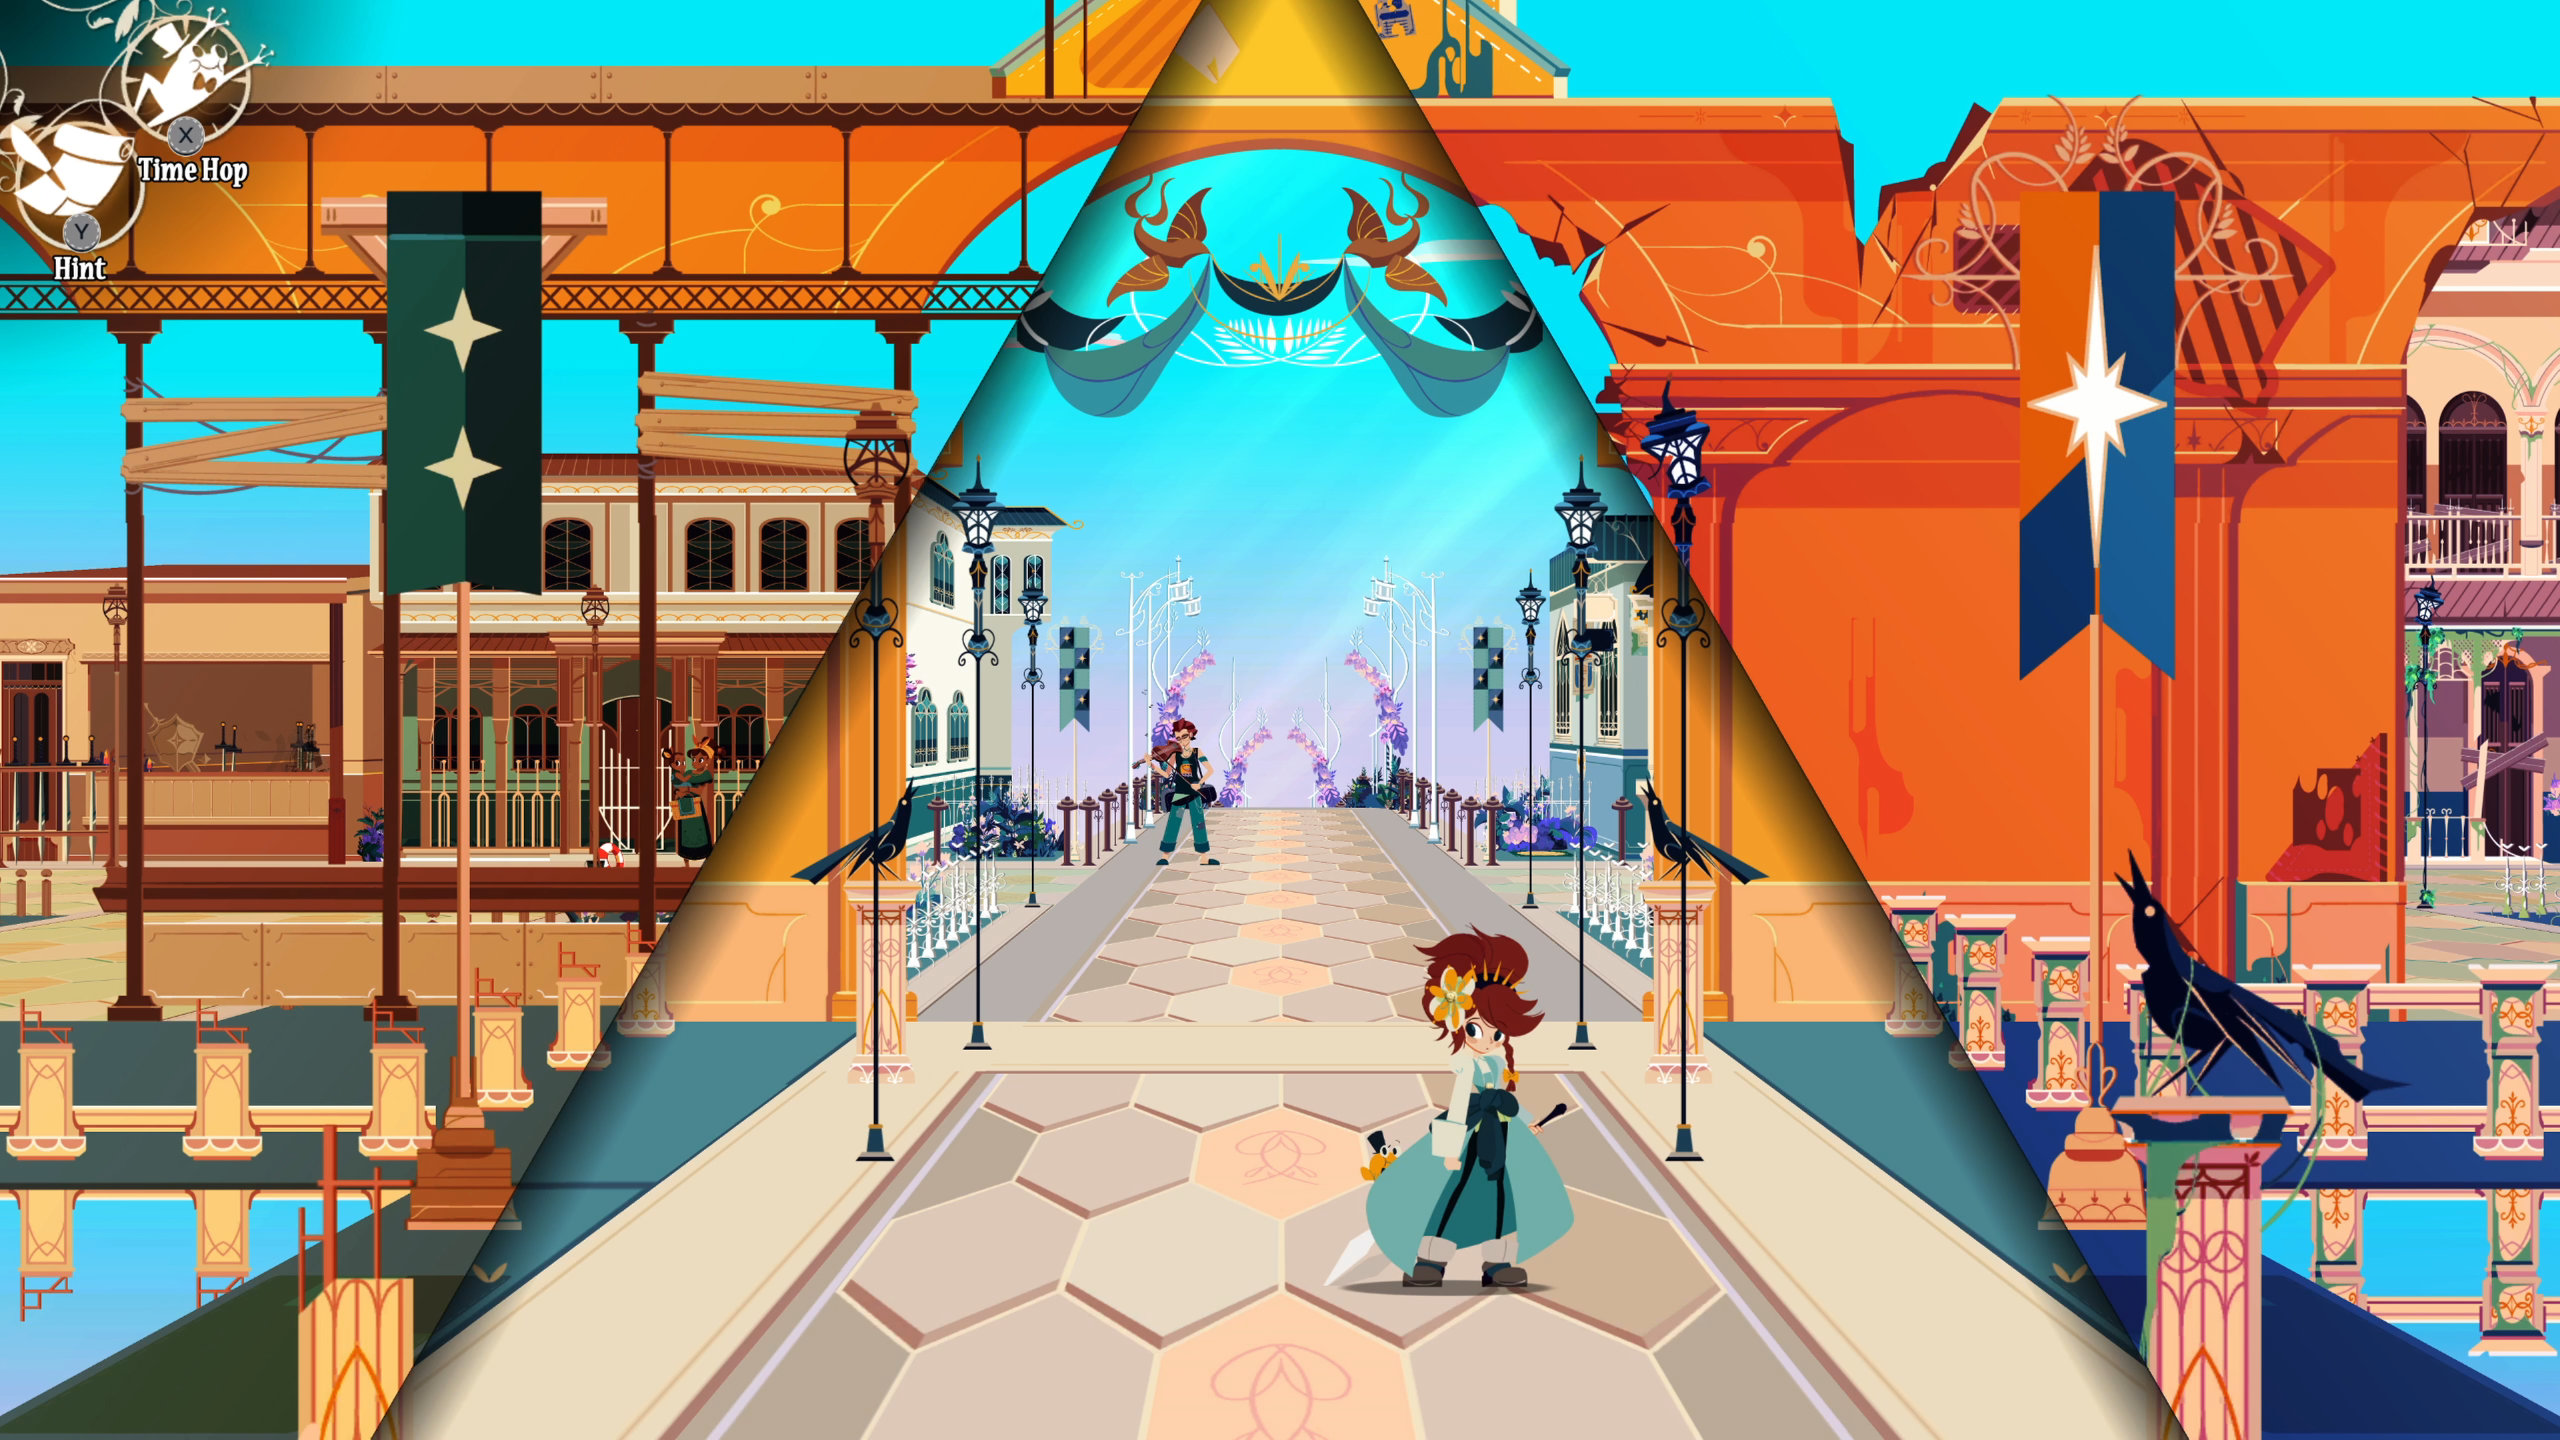 Crisbell pauses along the street in a town in Cris Tales.